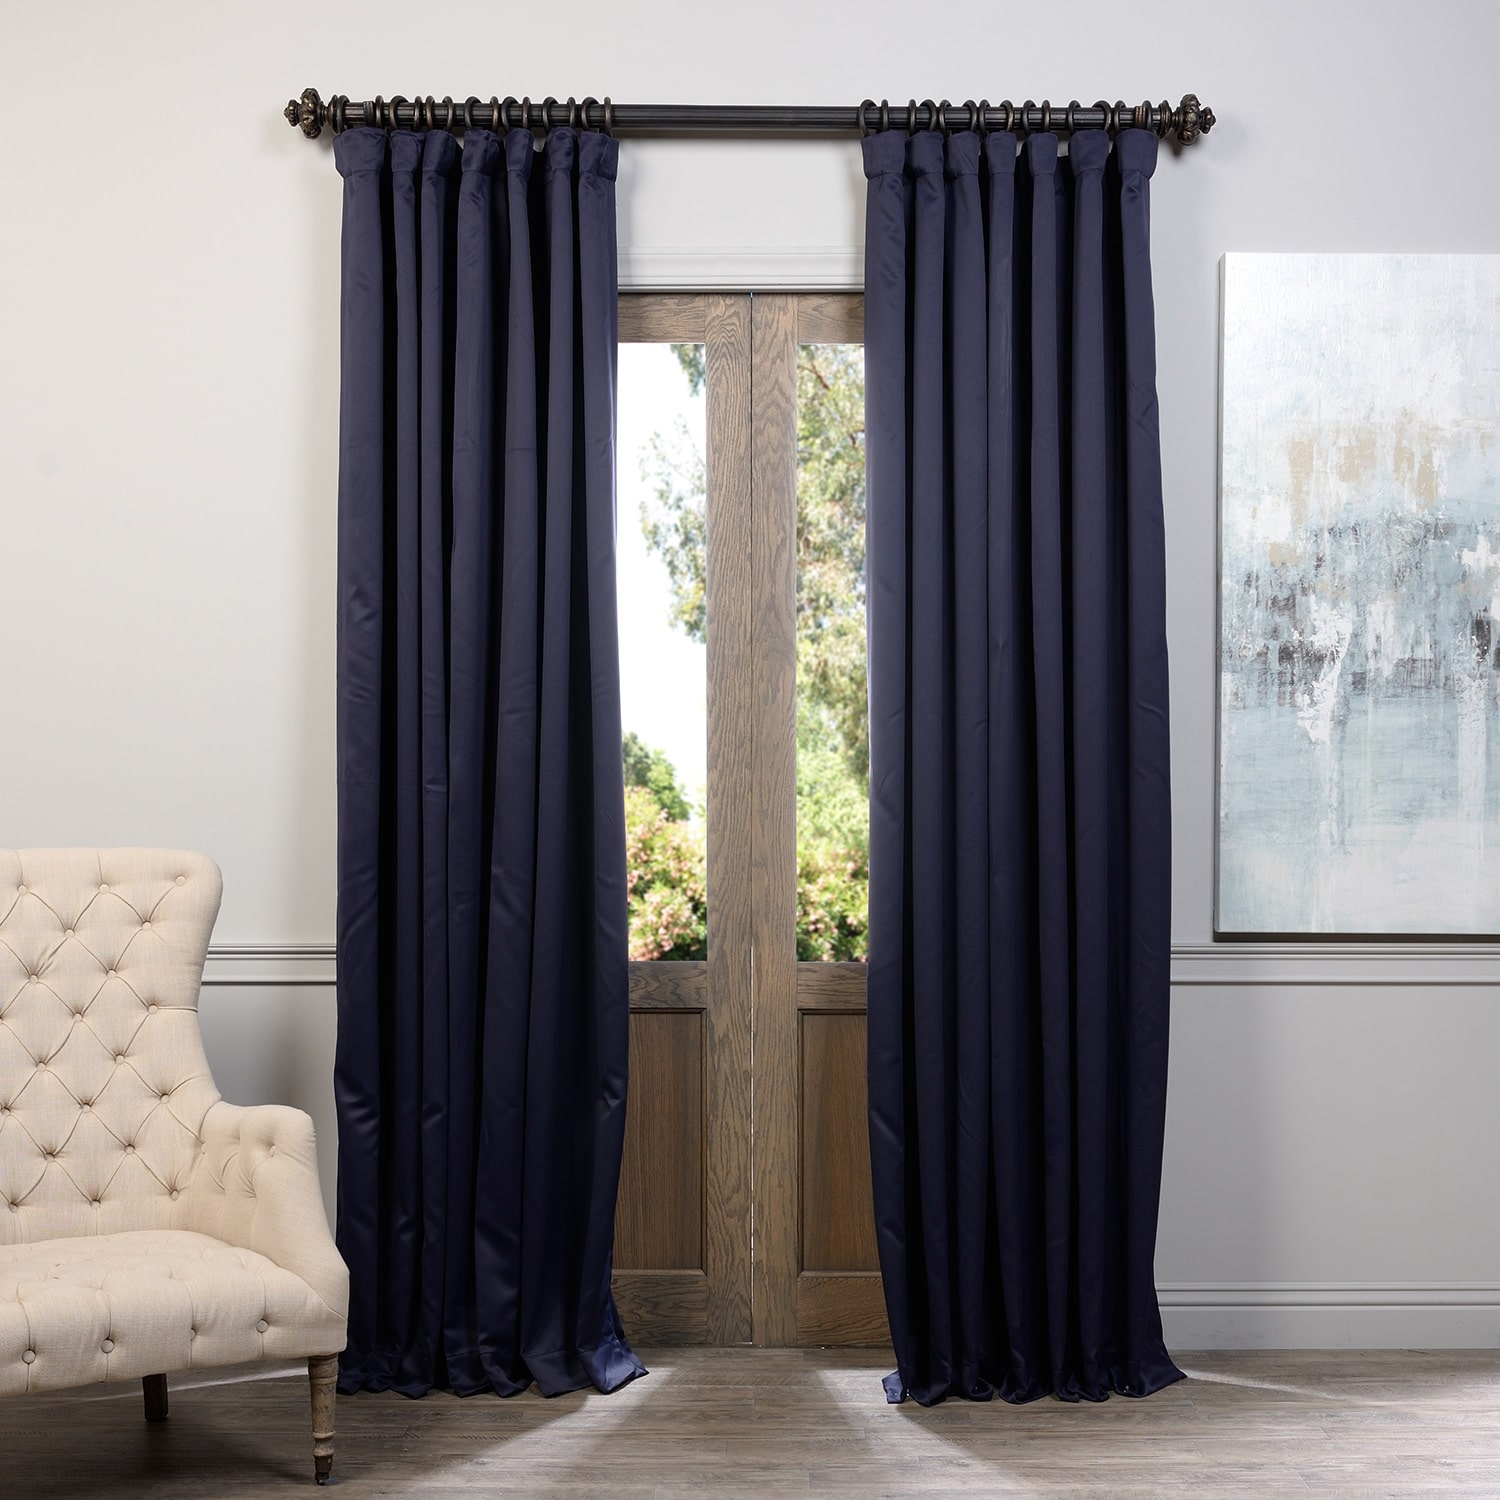 Lofty Inspiration Blackout Curtains 108 Inches Blackout Curtains In Extra Long Thermal Curtains (Photo 5 of 15)